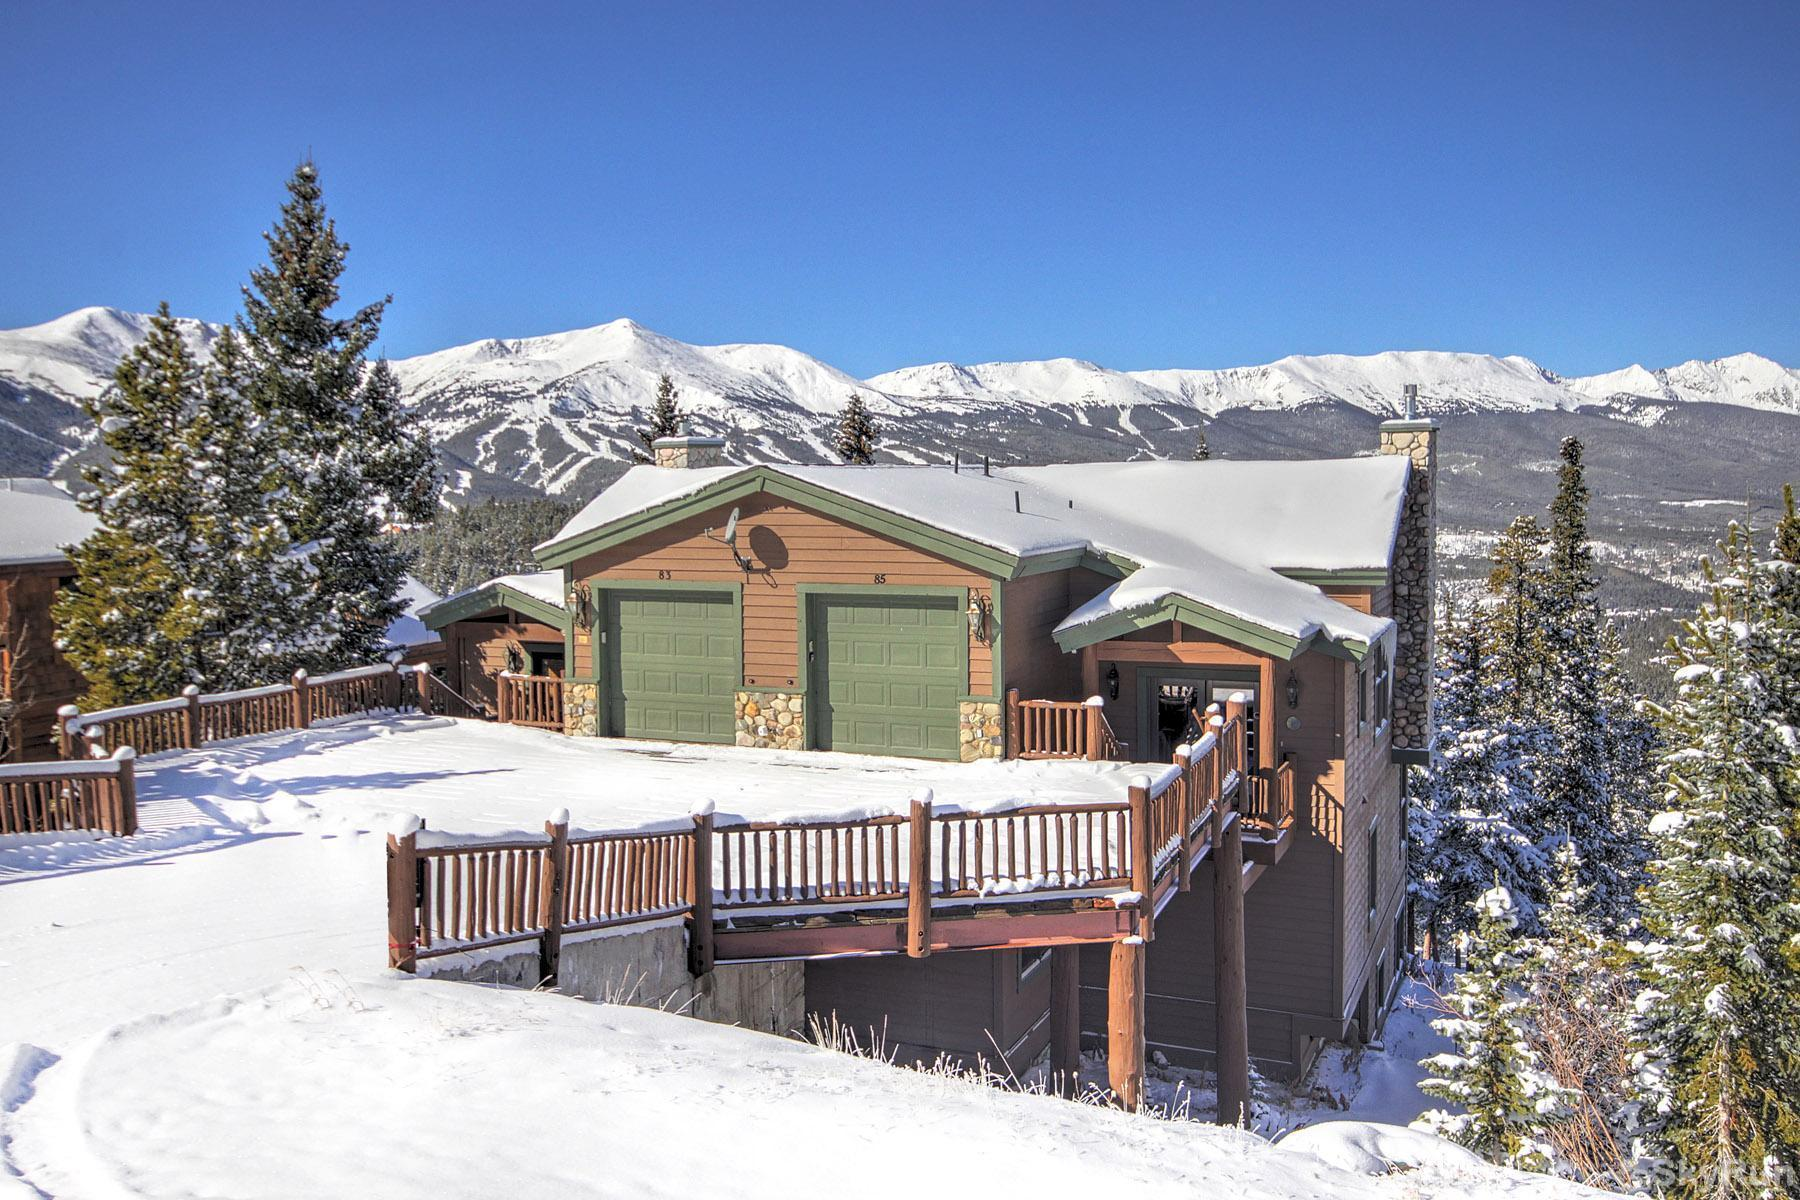 Big View Lodge Your mountain retreat just 7 minutes from Main St.